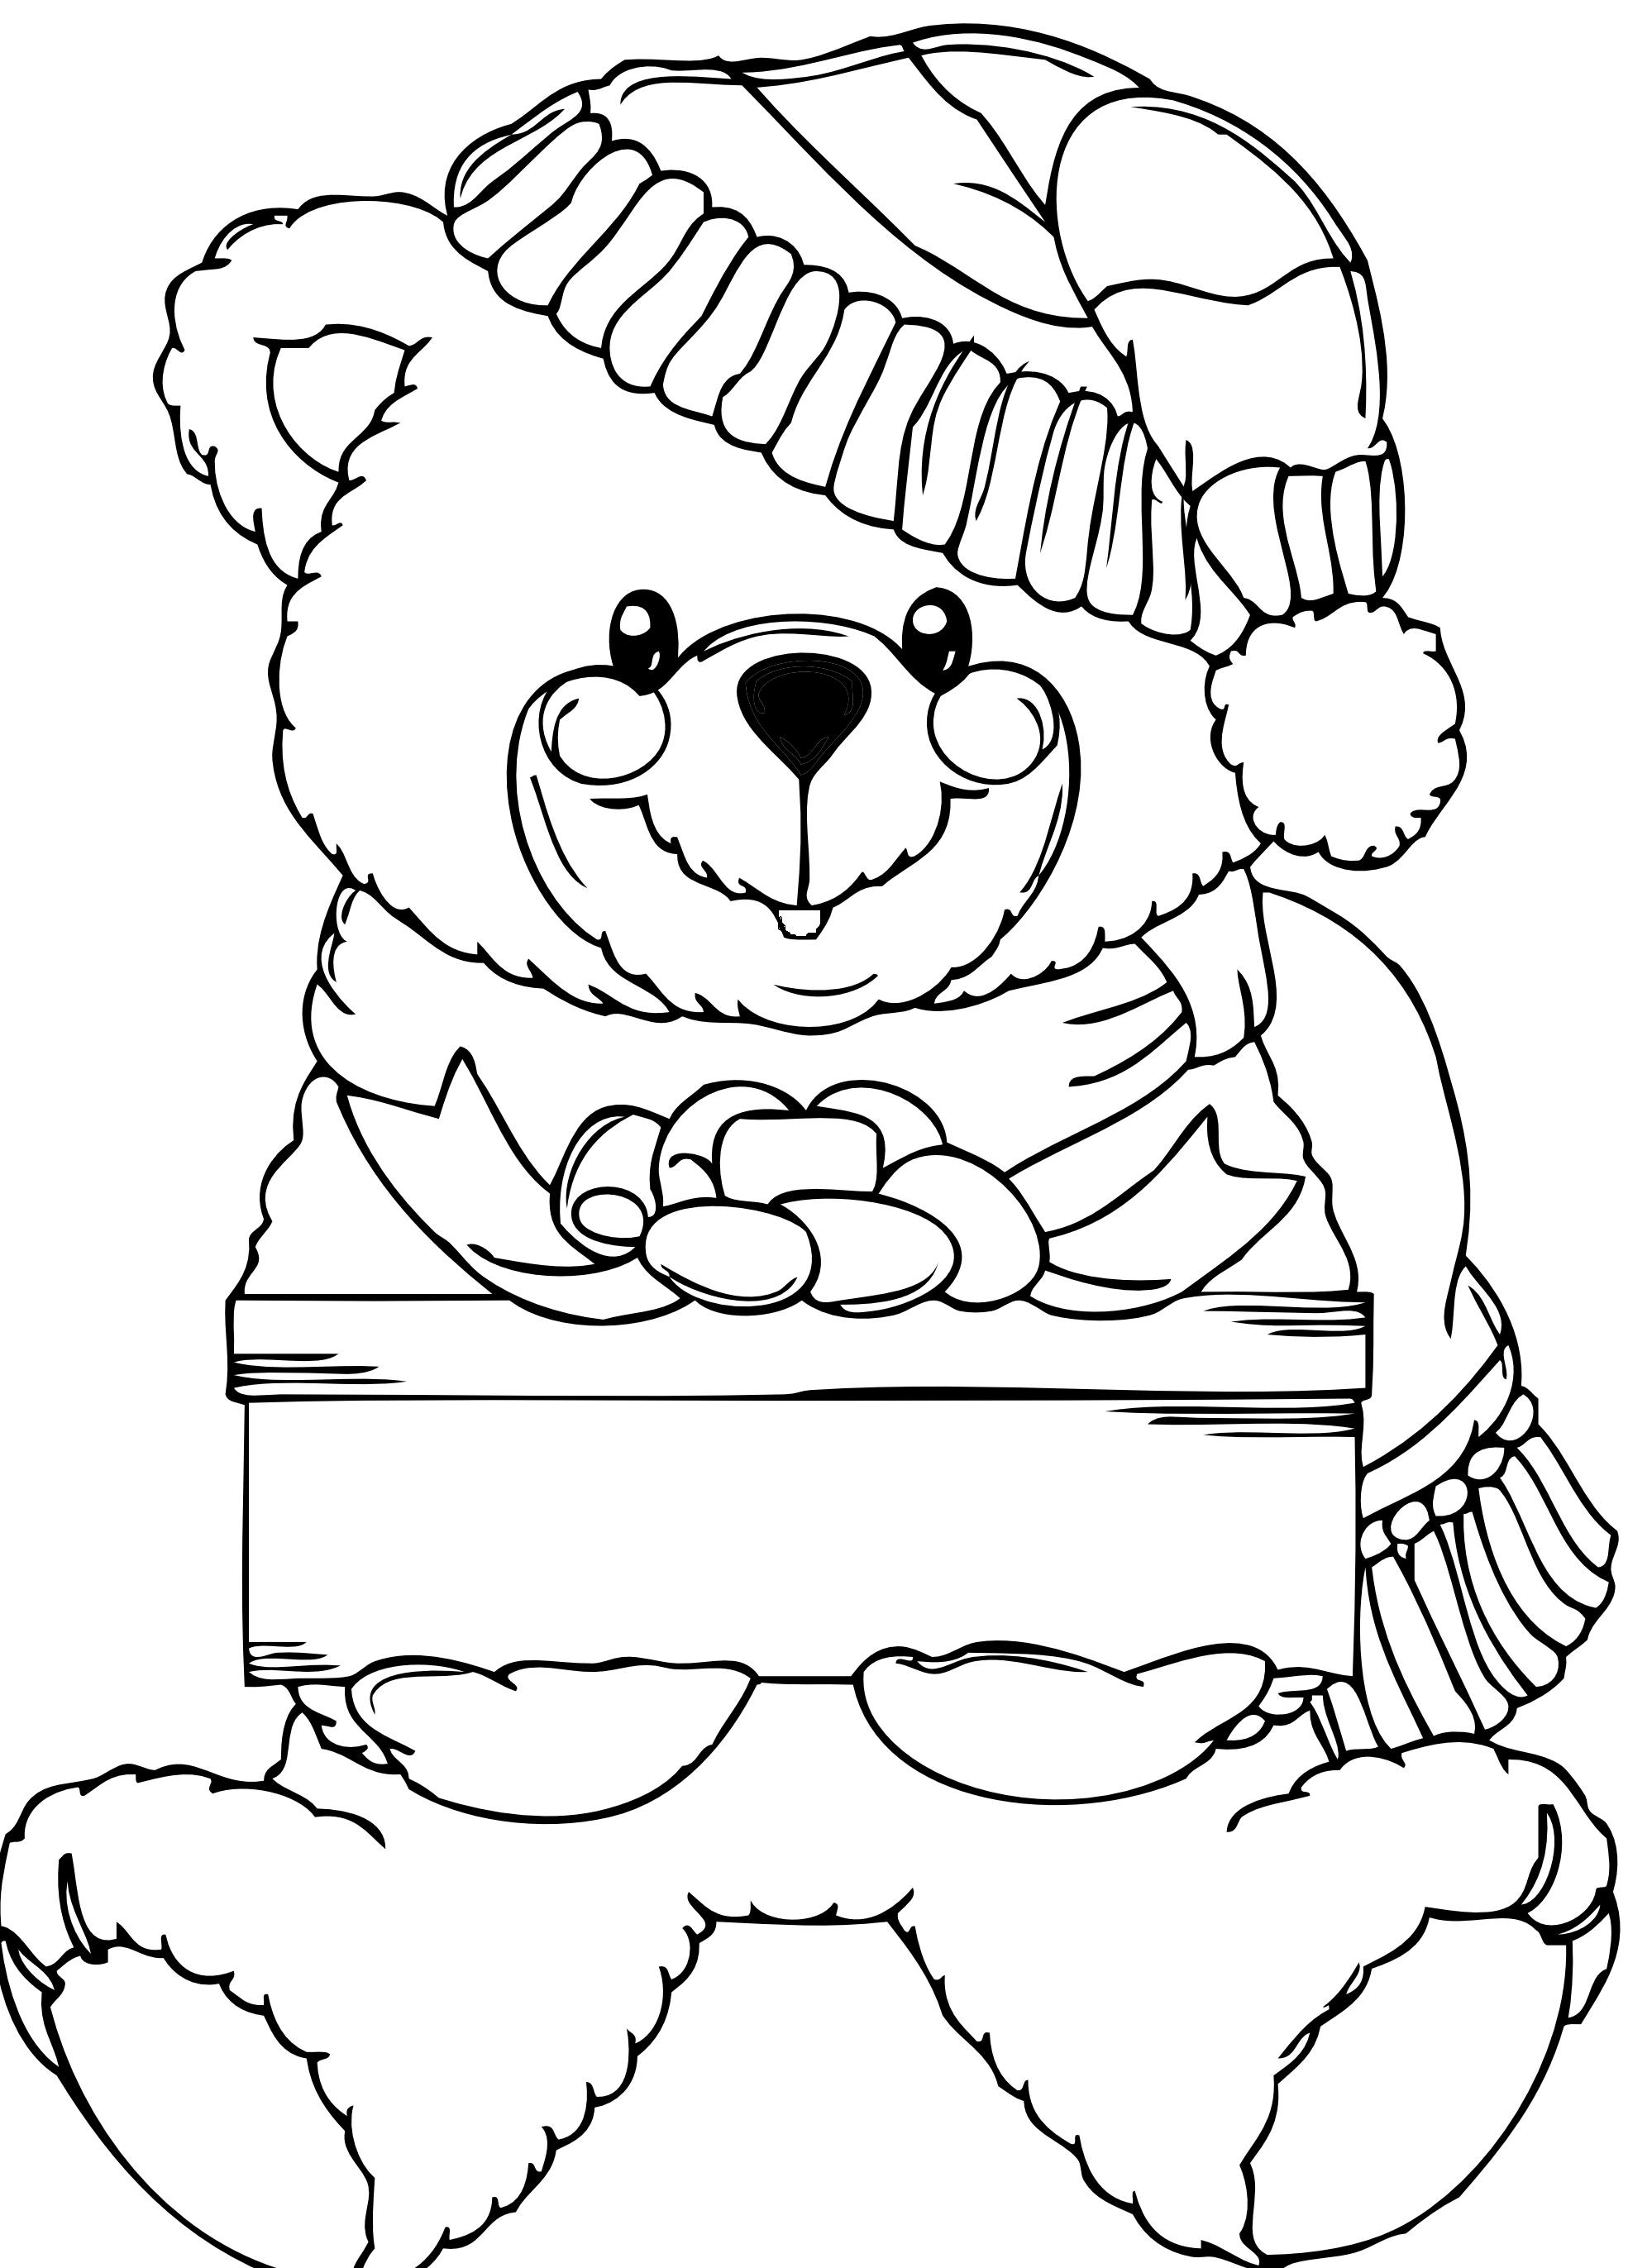 The toy that saved christmas coloring pages ~ Teddy Bear Happy Xmas | Christmas coloring pages, Teddy ...